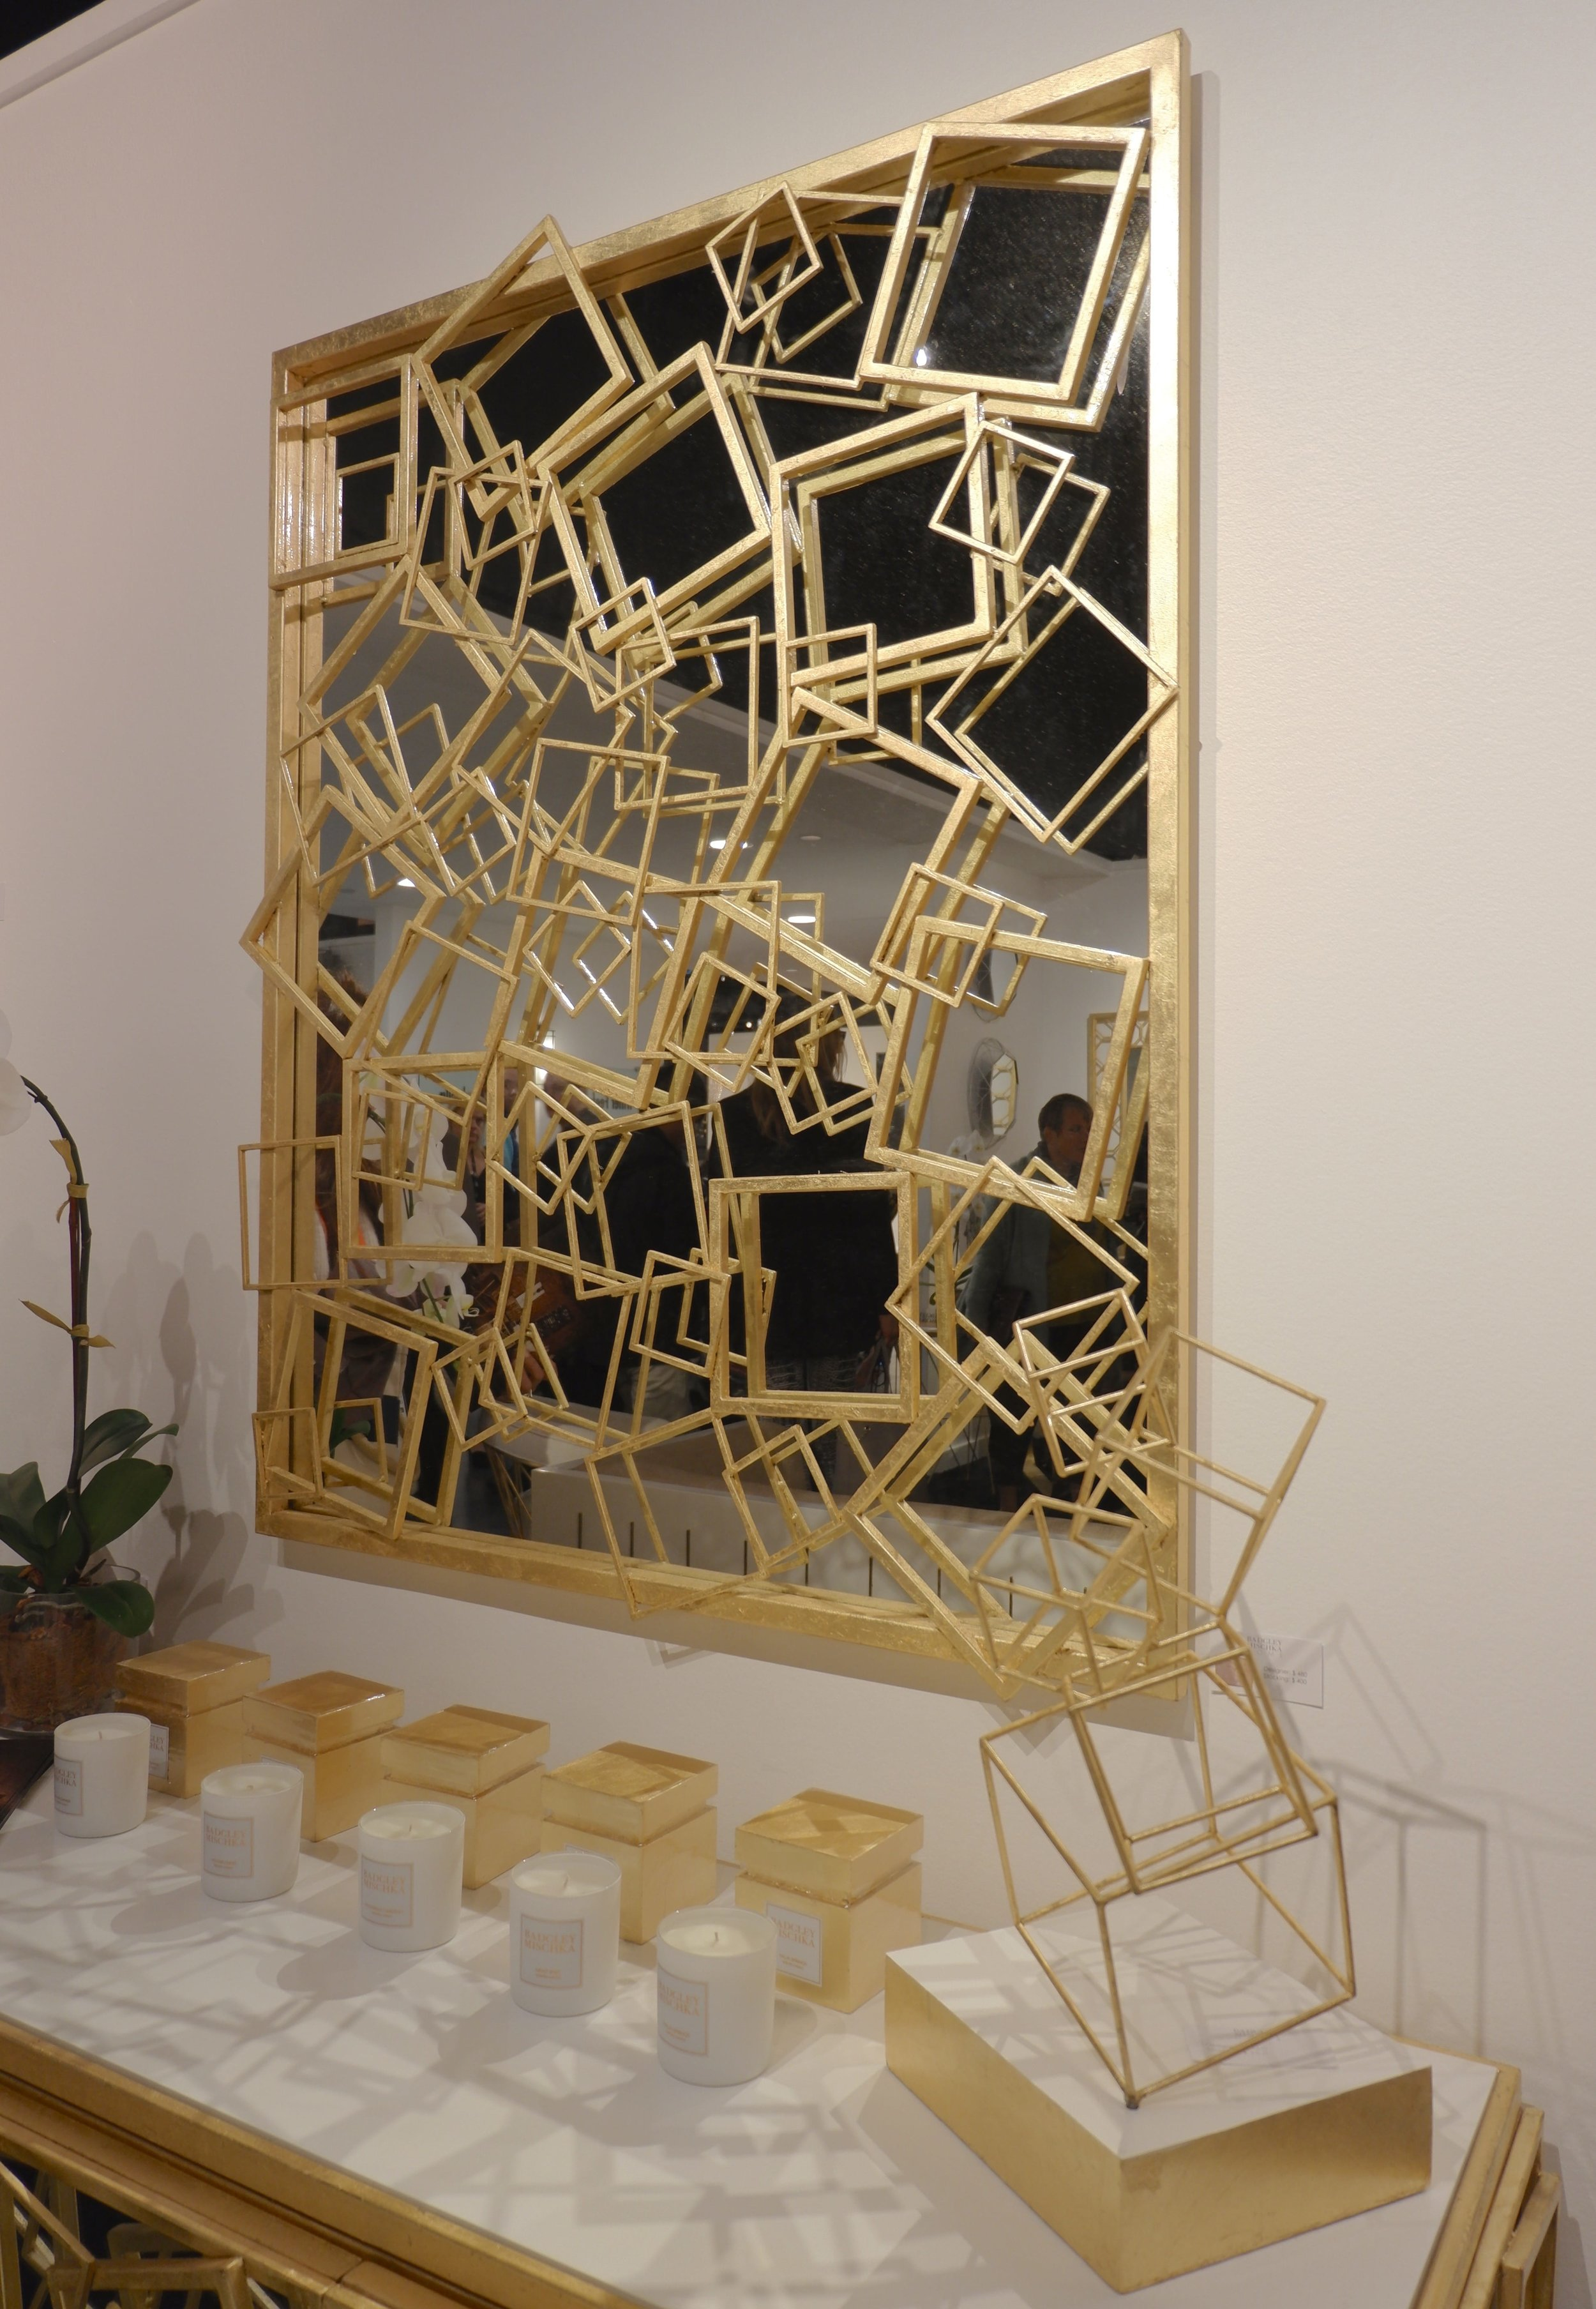 Gold leafed everything at Badgely Mischka Home.